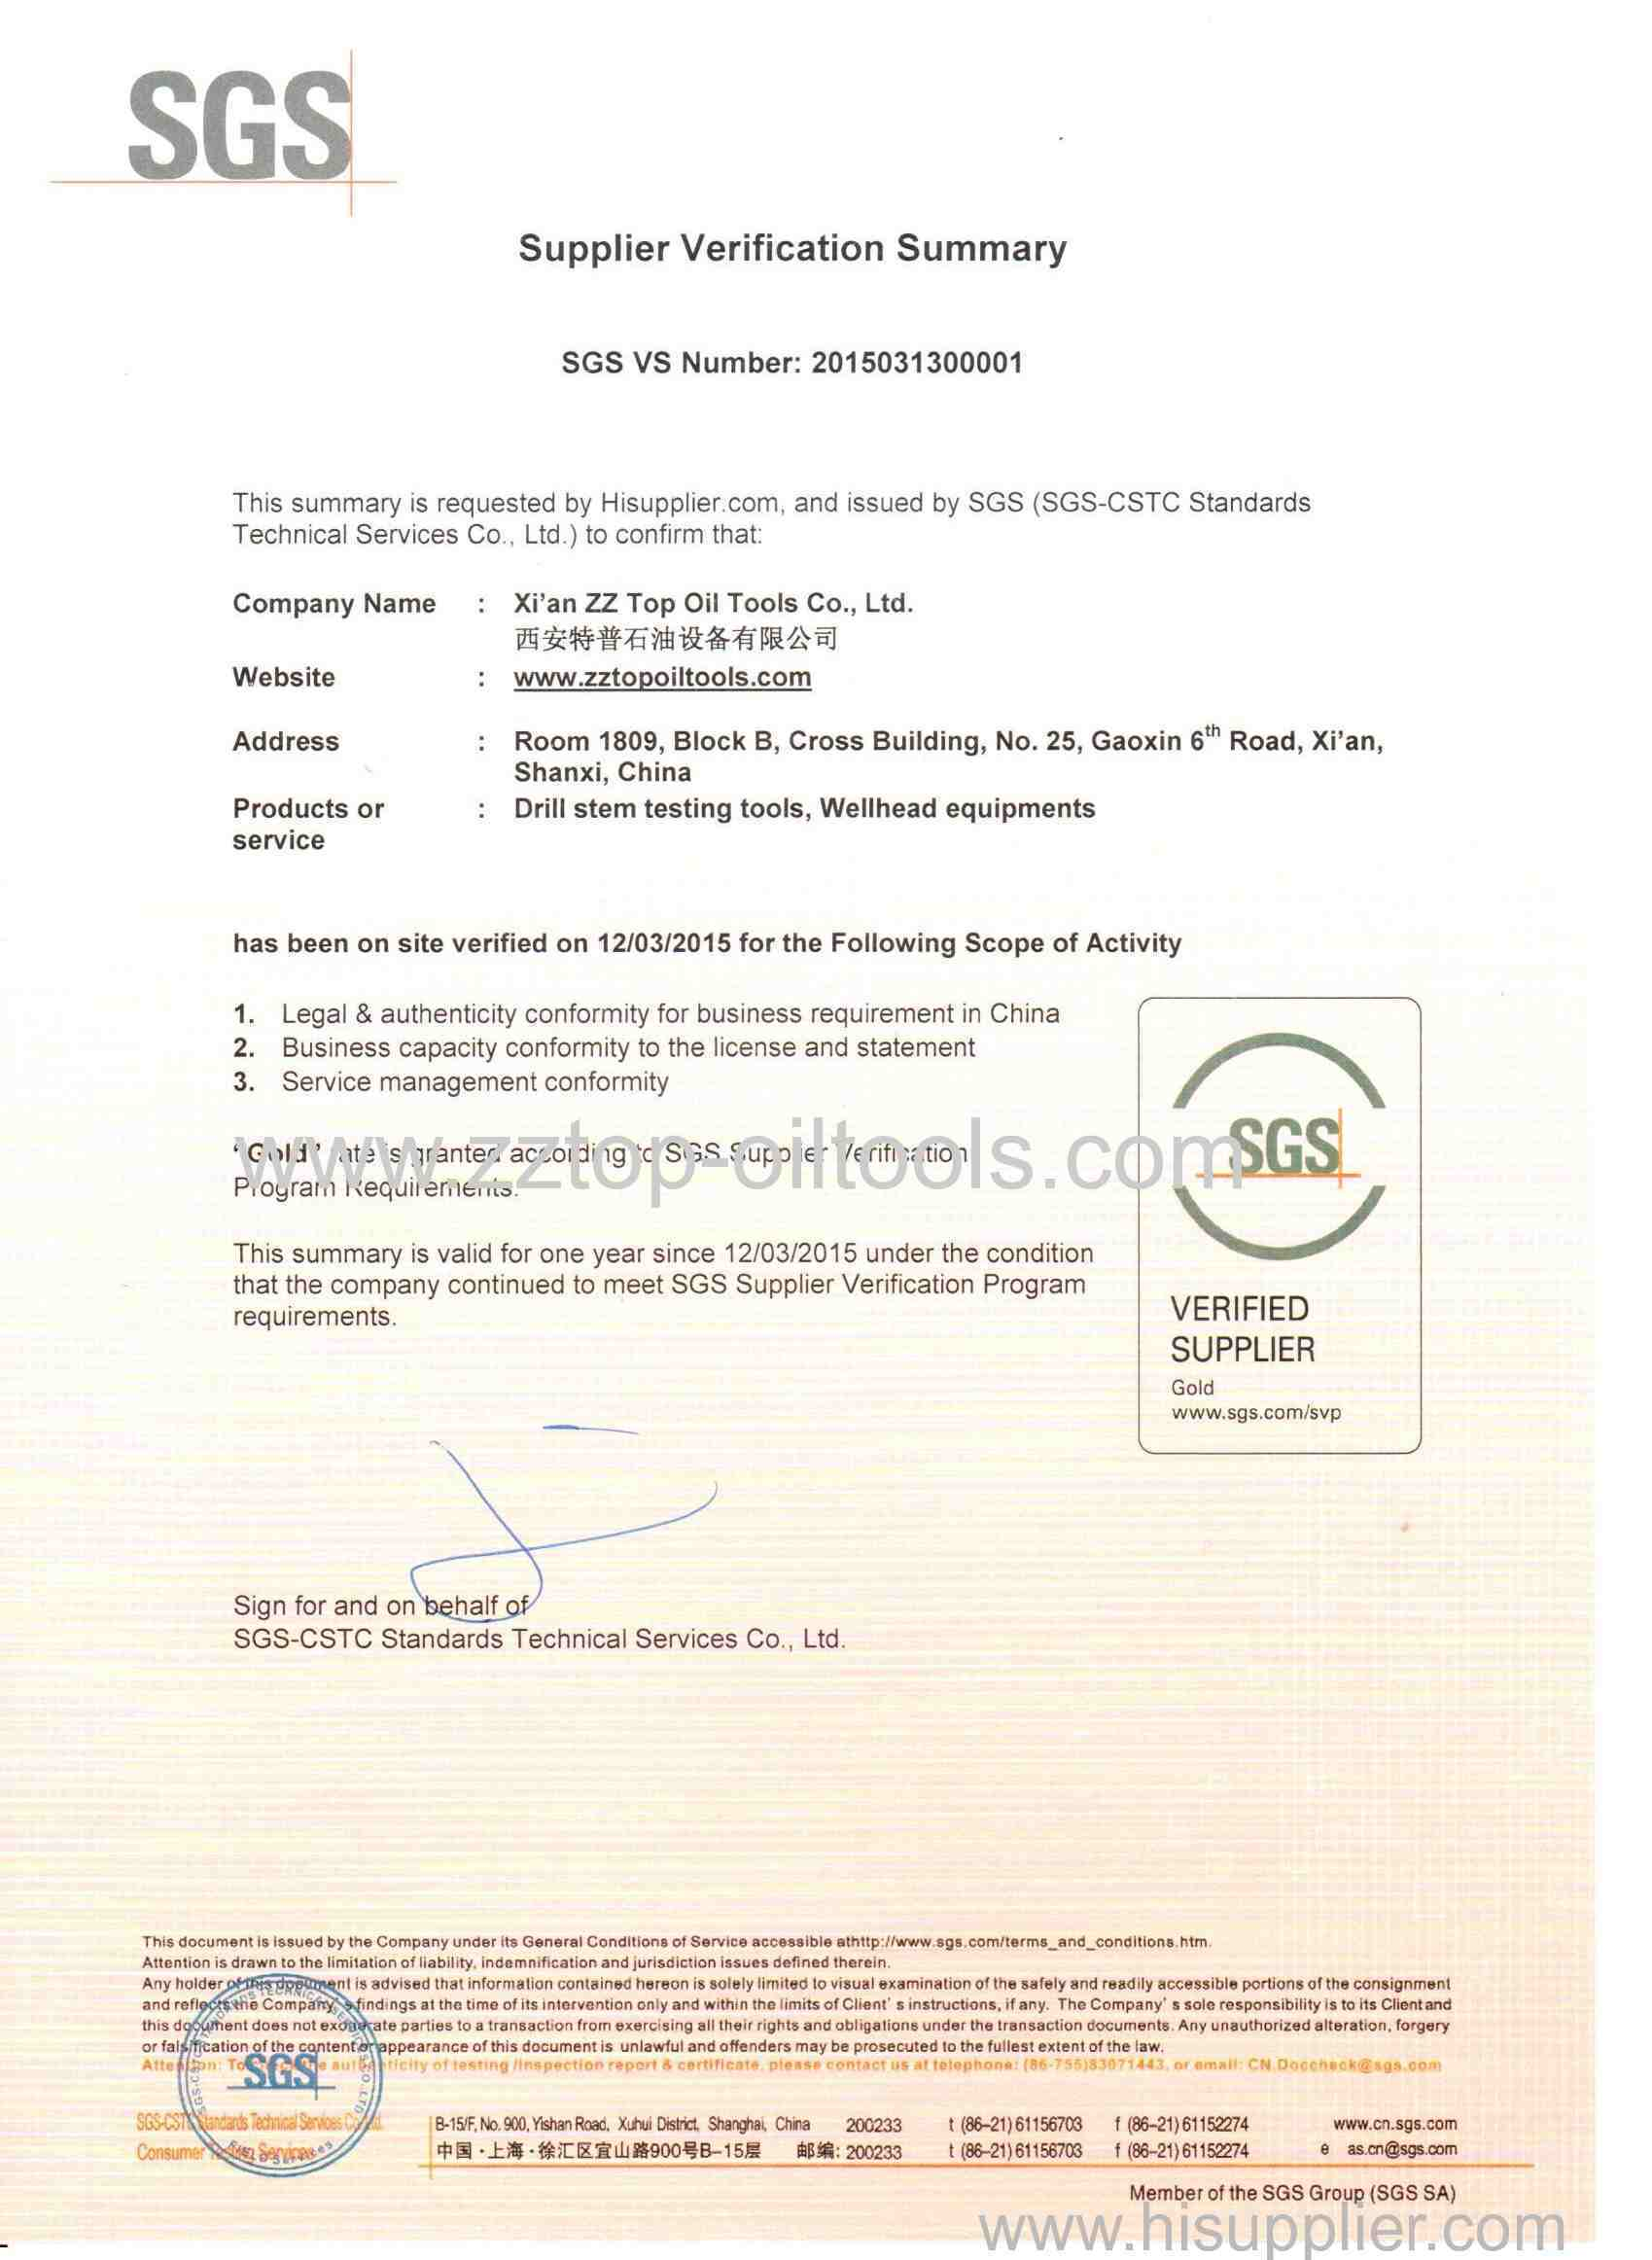 SGS certified supplier